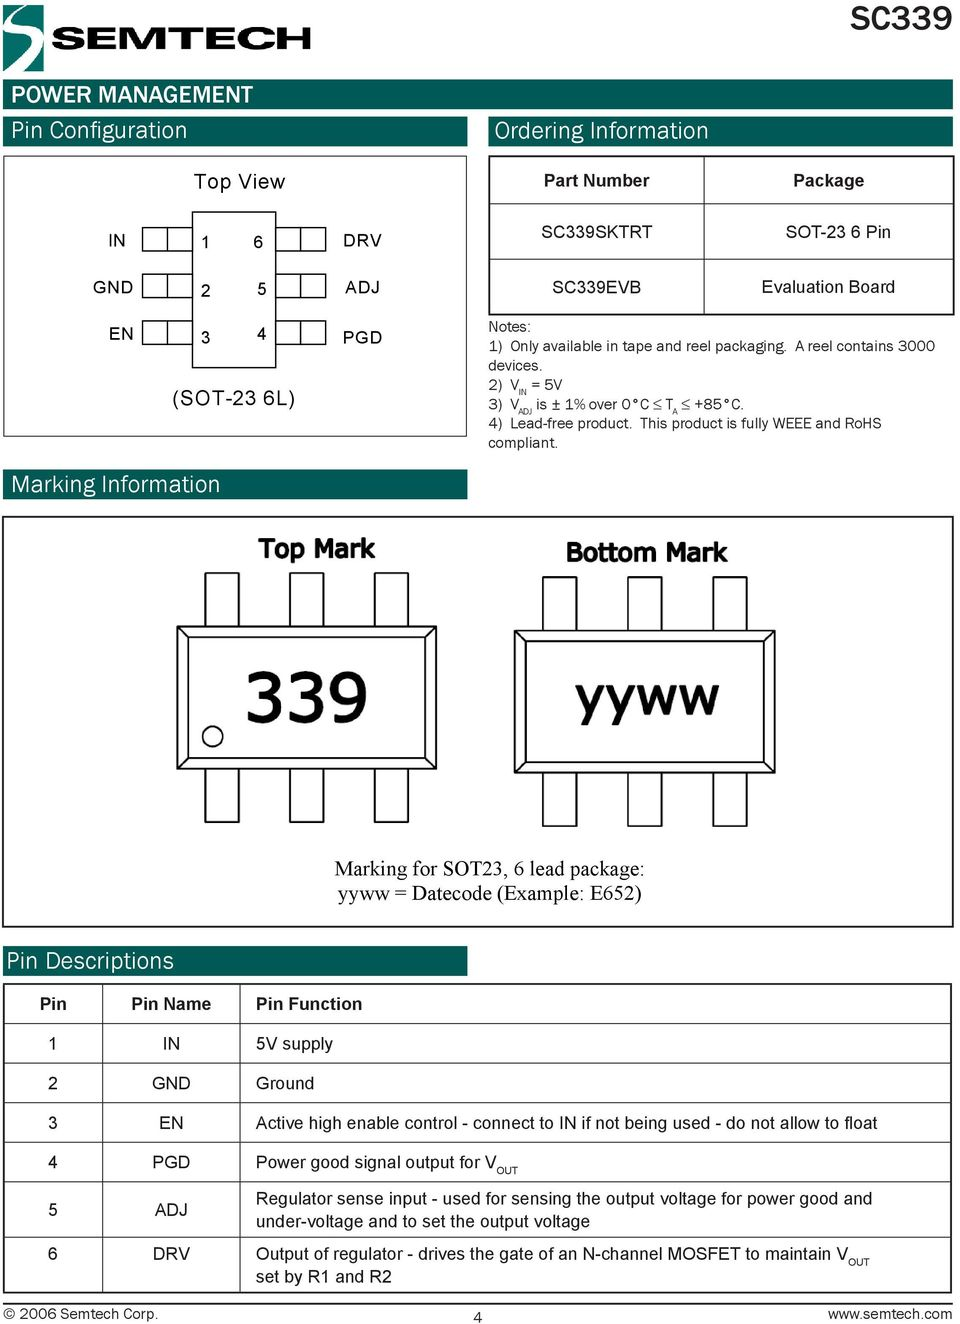 Marking Information Marking for SOT23, 6 lead package: yyww = Datecode (Example: E652) Pin Descriptions Pin Pin Name Pin Function 1 IN 5V supply 2 GND Ground 3 EN Active high enable control - connect